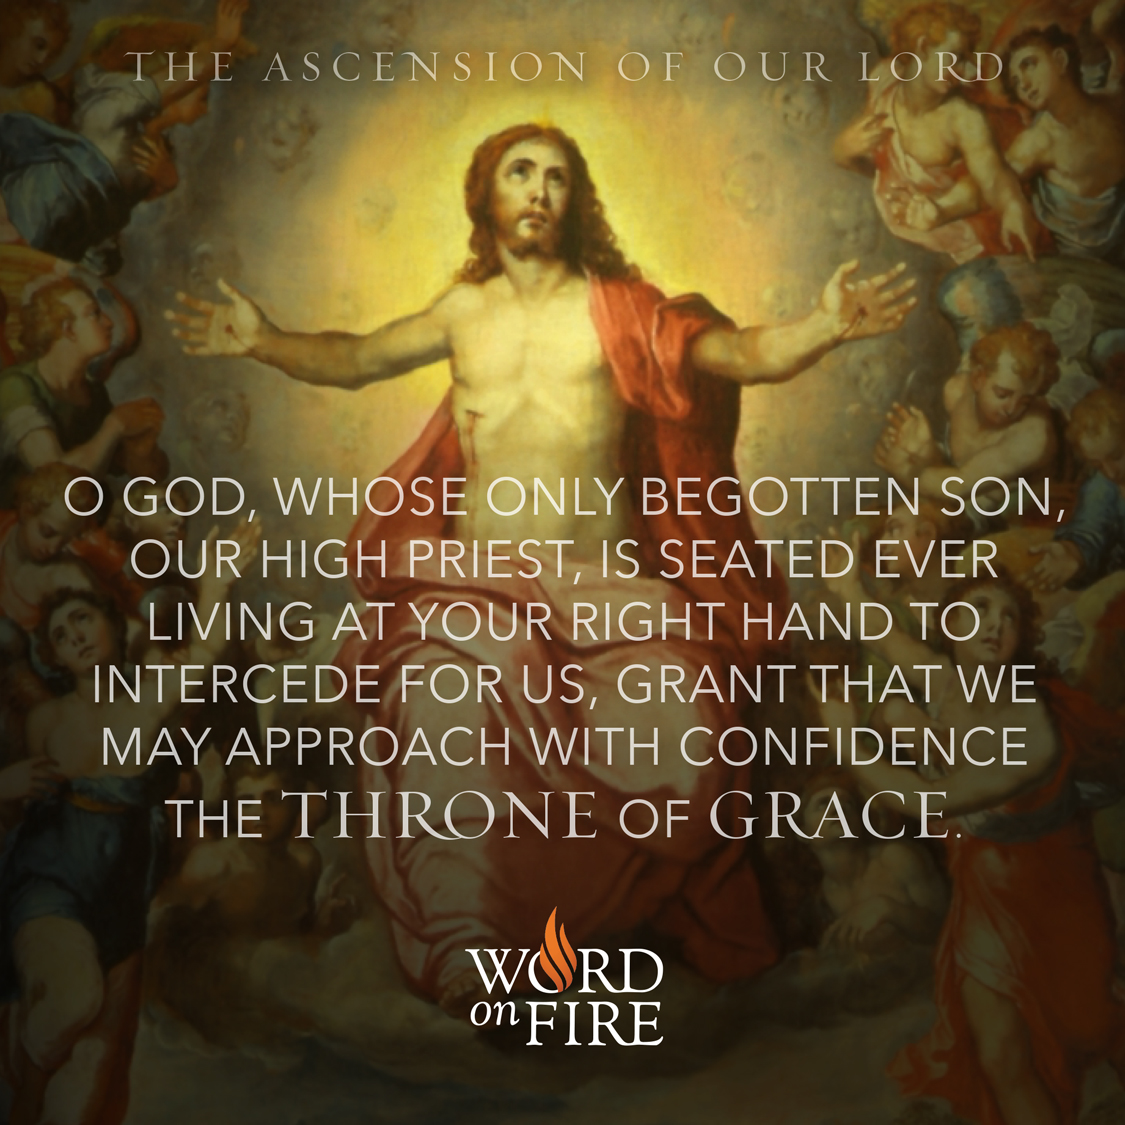 PRAYERGRAPHIC_AscensionoftheLord-1